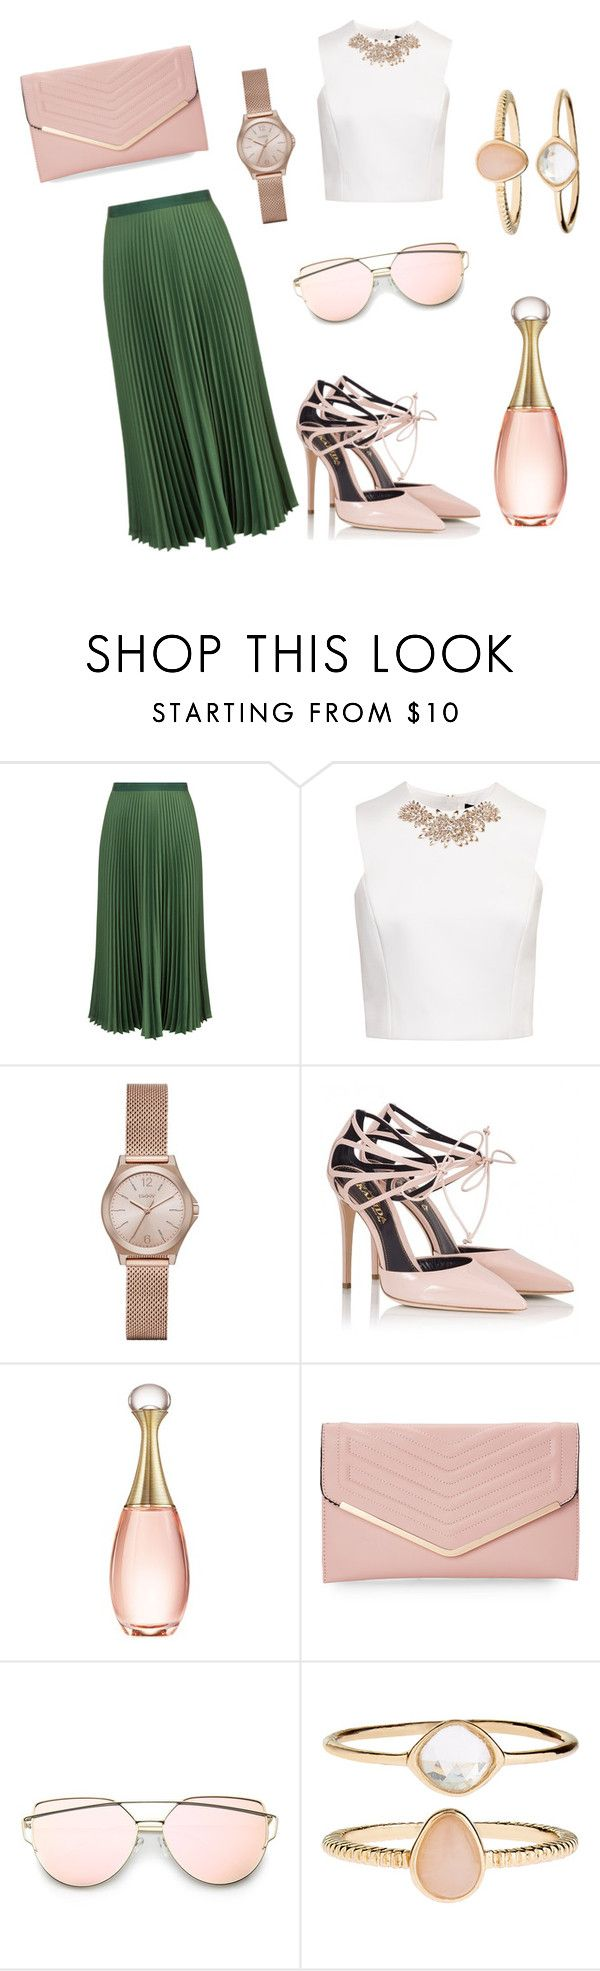 """""""Olive and Blush"""" by beautybydelani on Polyvore featuring Vanessa Bruno, Ted Baker, DKNY, Fratelli Karida, Christian Dior, Sasha and Accessorize"""